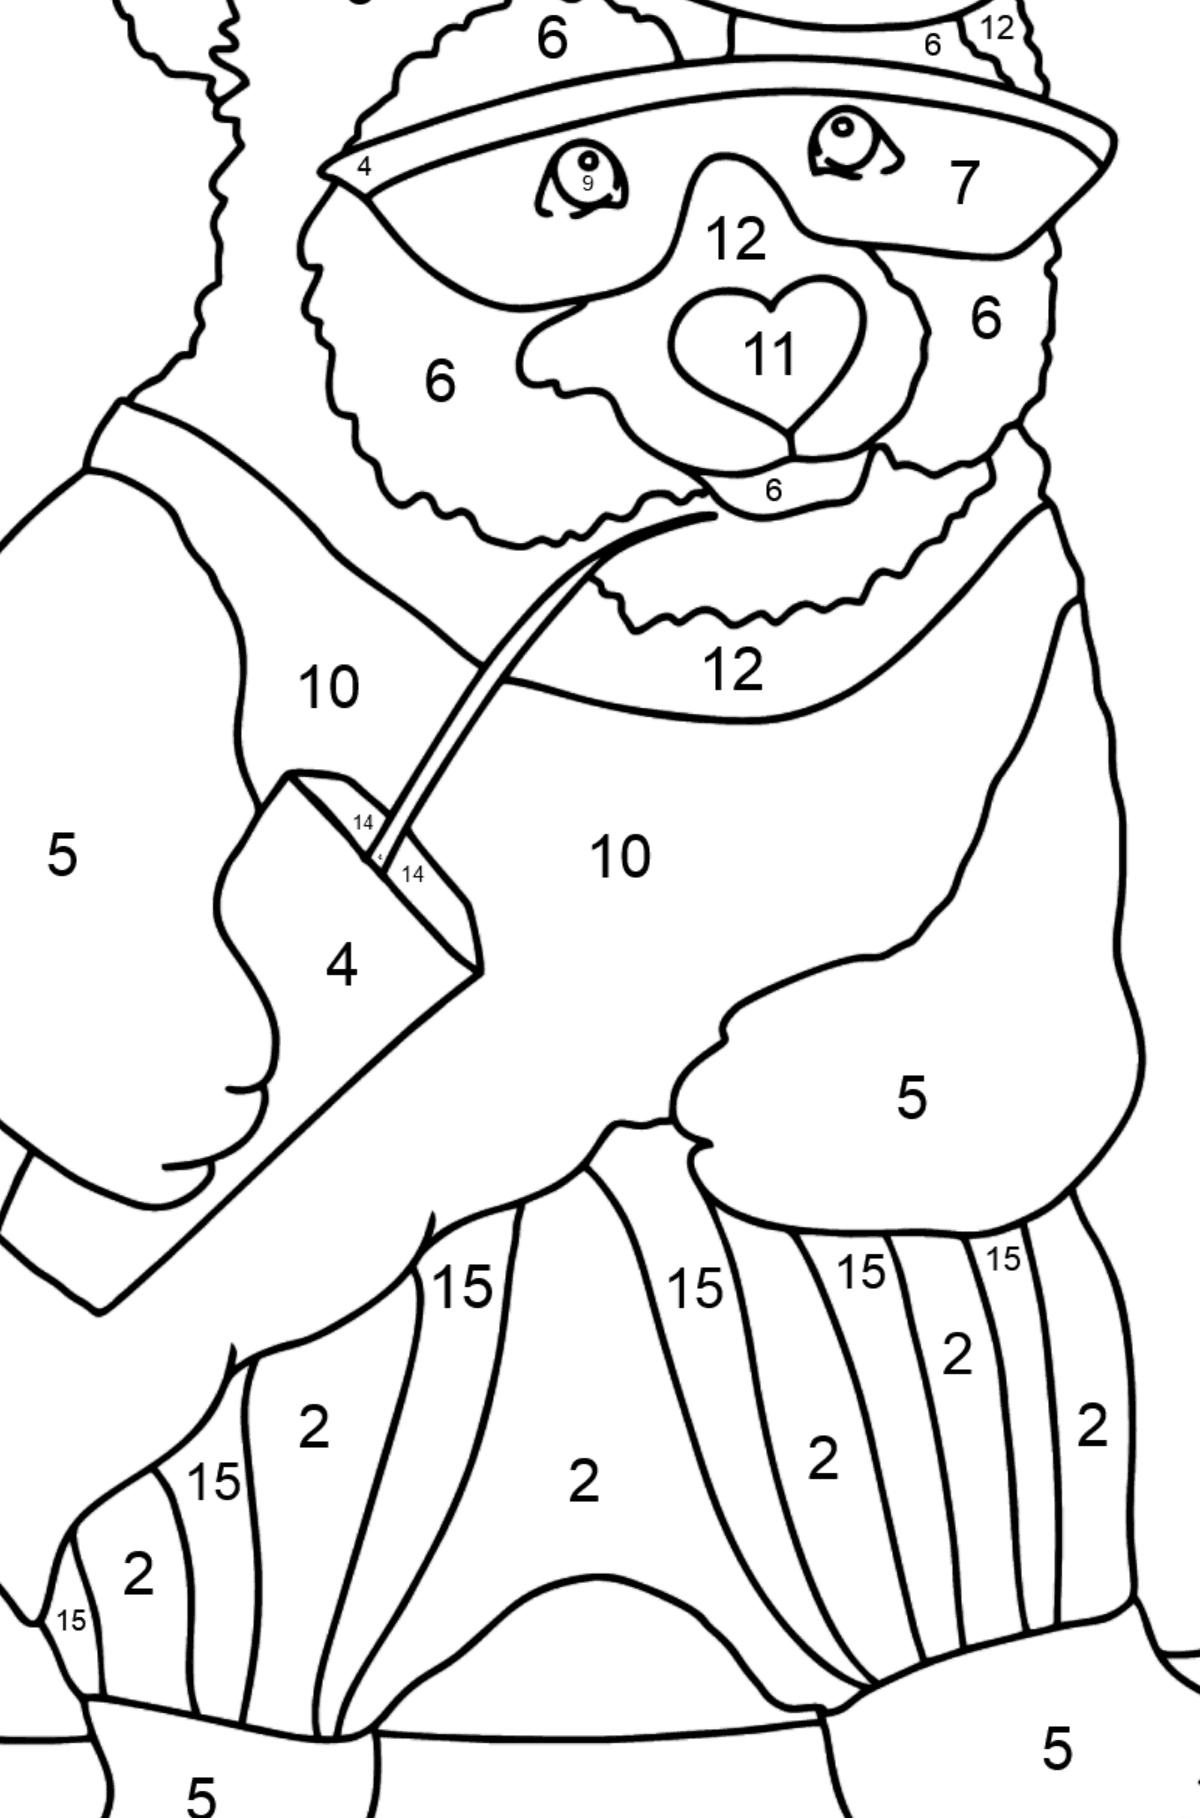 Coloring Page - A Panda in Sunglasses - Coloring by Numbers for Kids